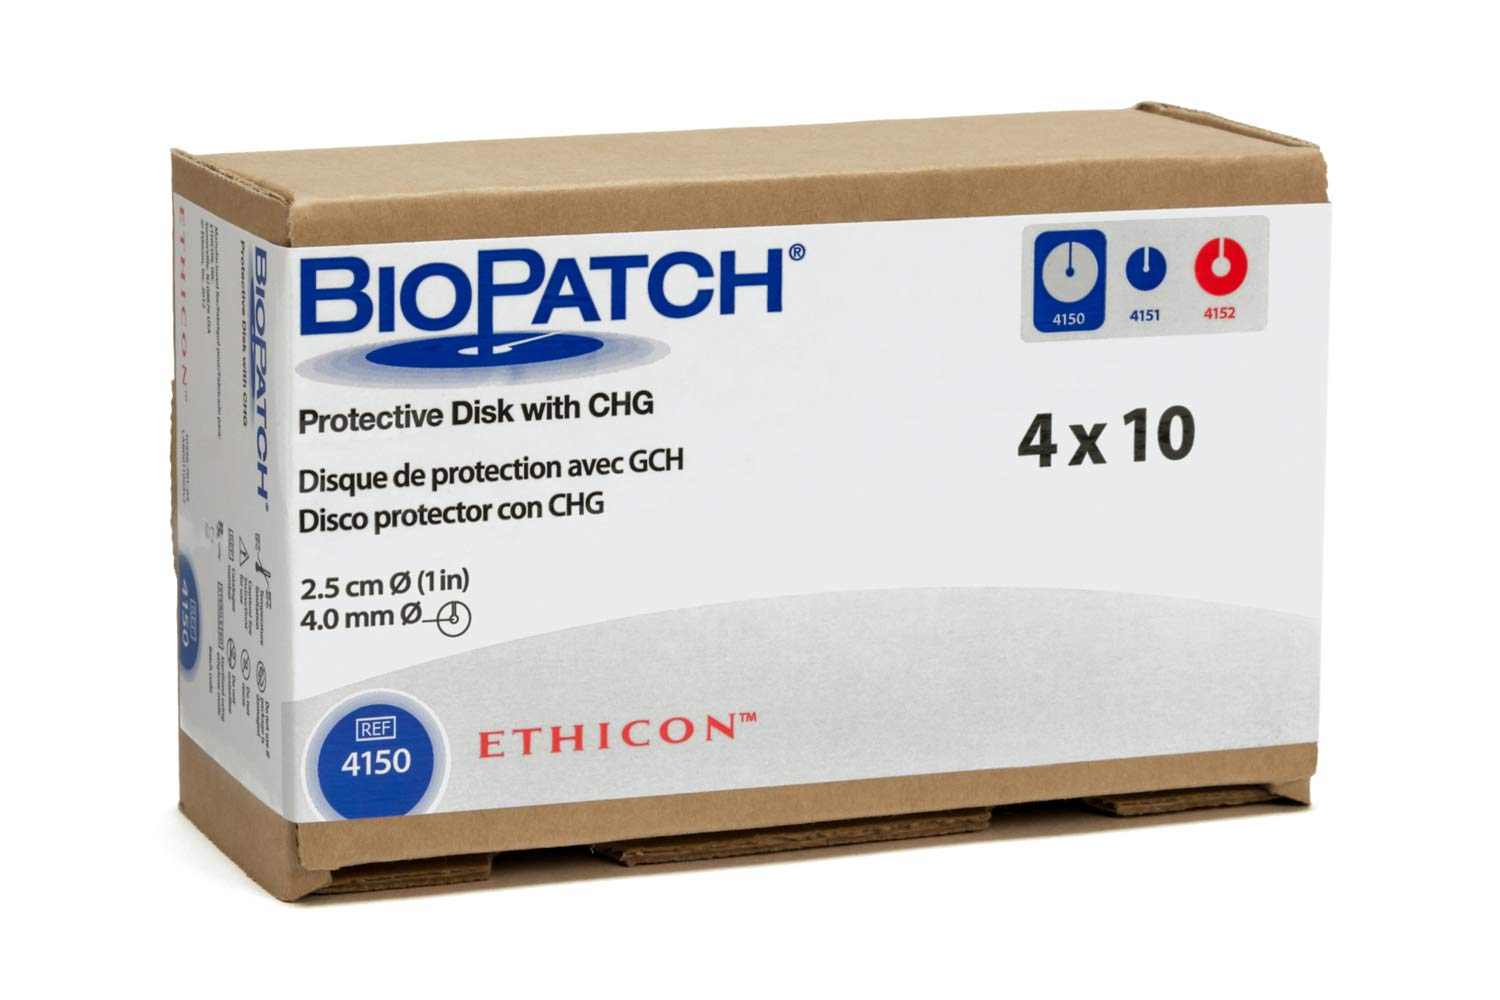 Ethicon BIOPATCH Protective Disk with CHG, 4150, Antimicrobial IV Dressing, 2.5 cm Diameter with 4 mm Center Opening, Medical Supplies by Ethicon